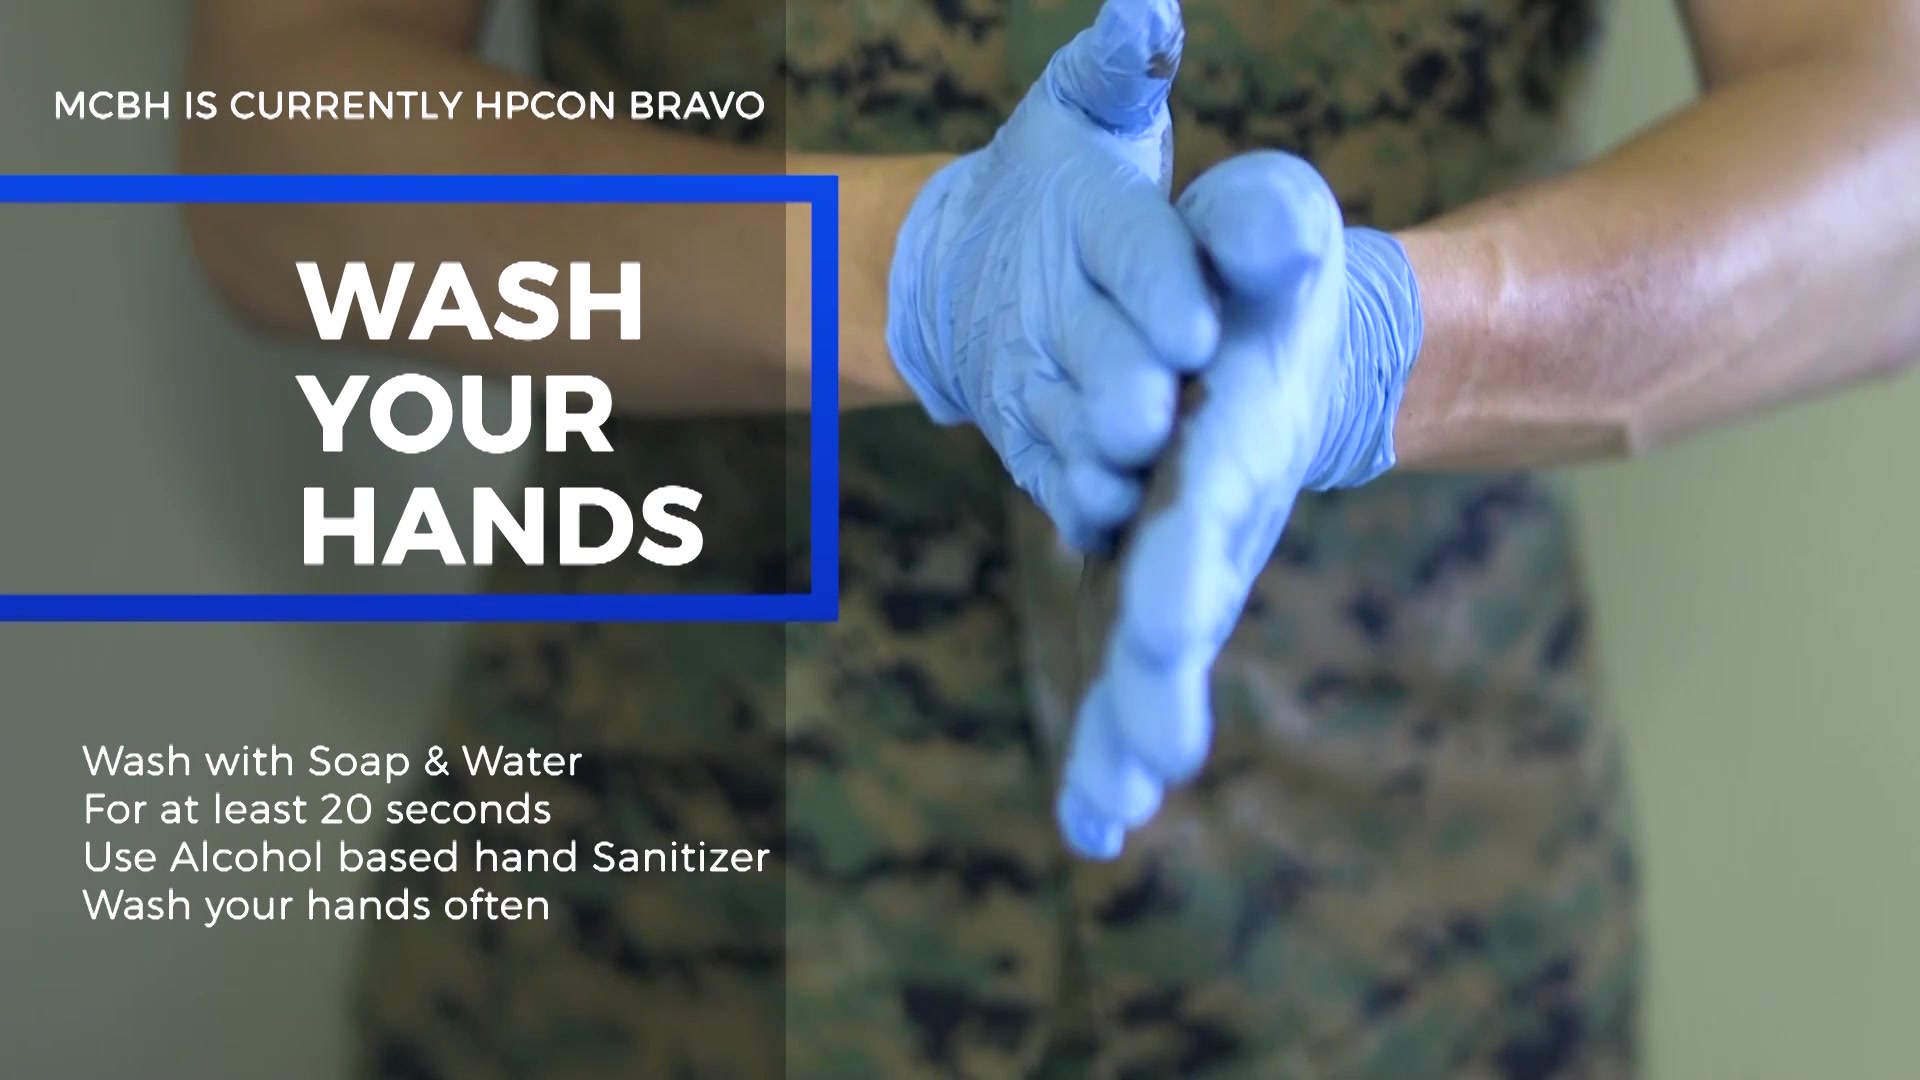 Wash your hands with soap and water for at least twenty seconds and wash them often and thoroughly. When using hand sanitizer, use alcohol based sanitizer. Marine Corps Base Hawaii is currently in Health Protection Condition Bravo, which is where the military and medical leaders are taking necessary precautions to prevent or respond to a potential outbreak. (U.S. Marine Corps video by MCBH COMMSTRAT)